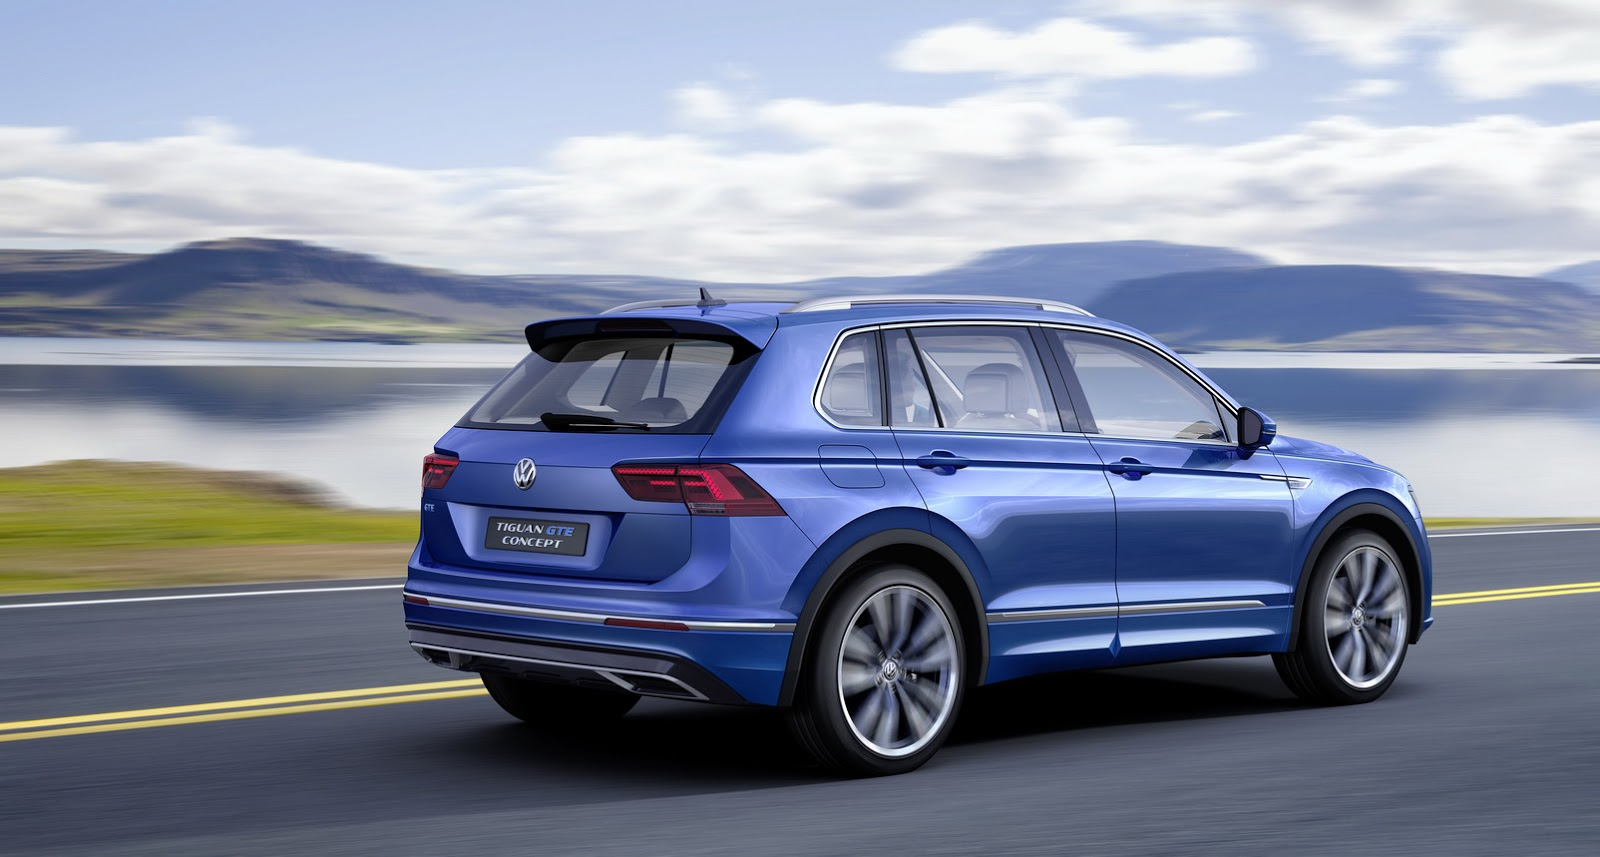 Vw Tiguan Gte  Plug In Hybrid >> Volkswagen Tiguan GTE Concept Revealed with 218 PS and 50 KM Electric Range - autoevolution